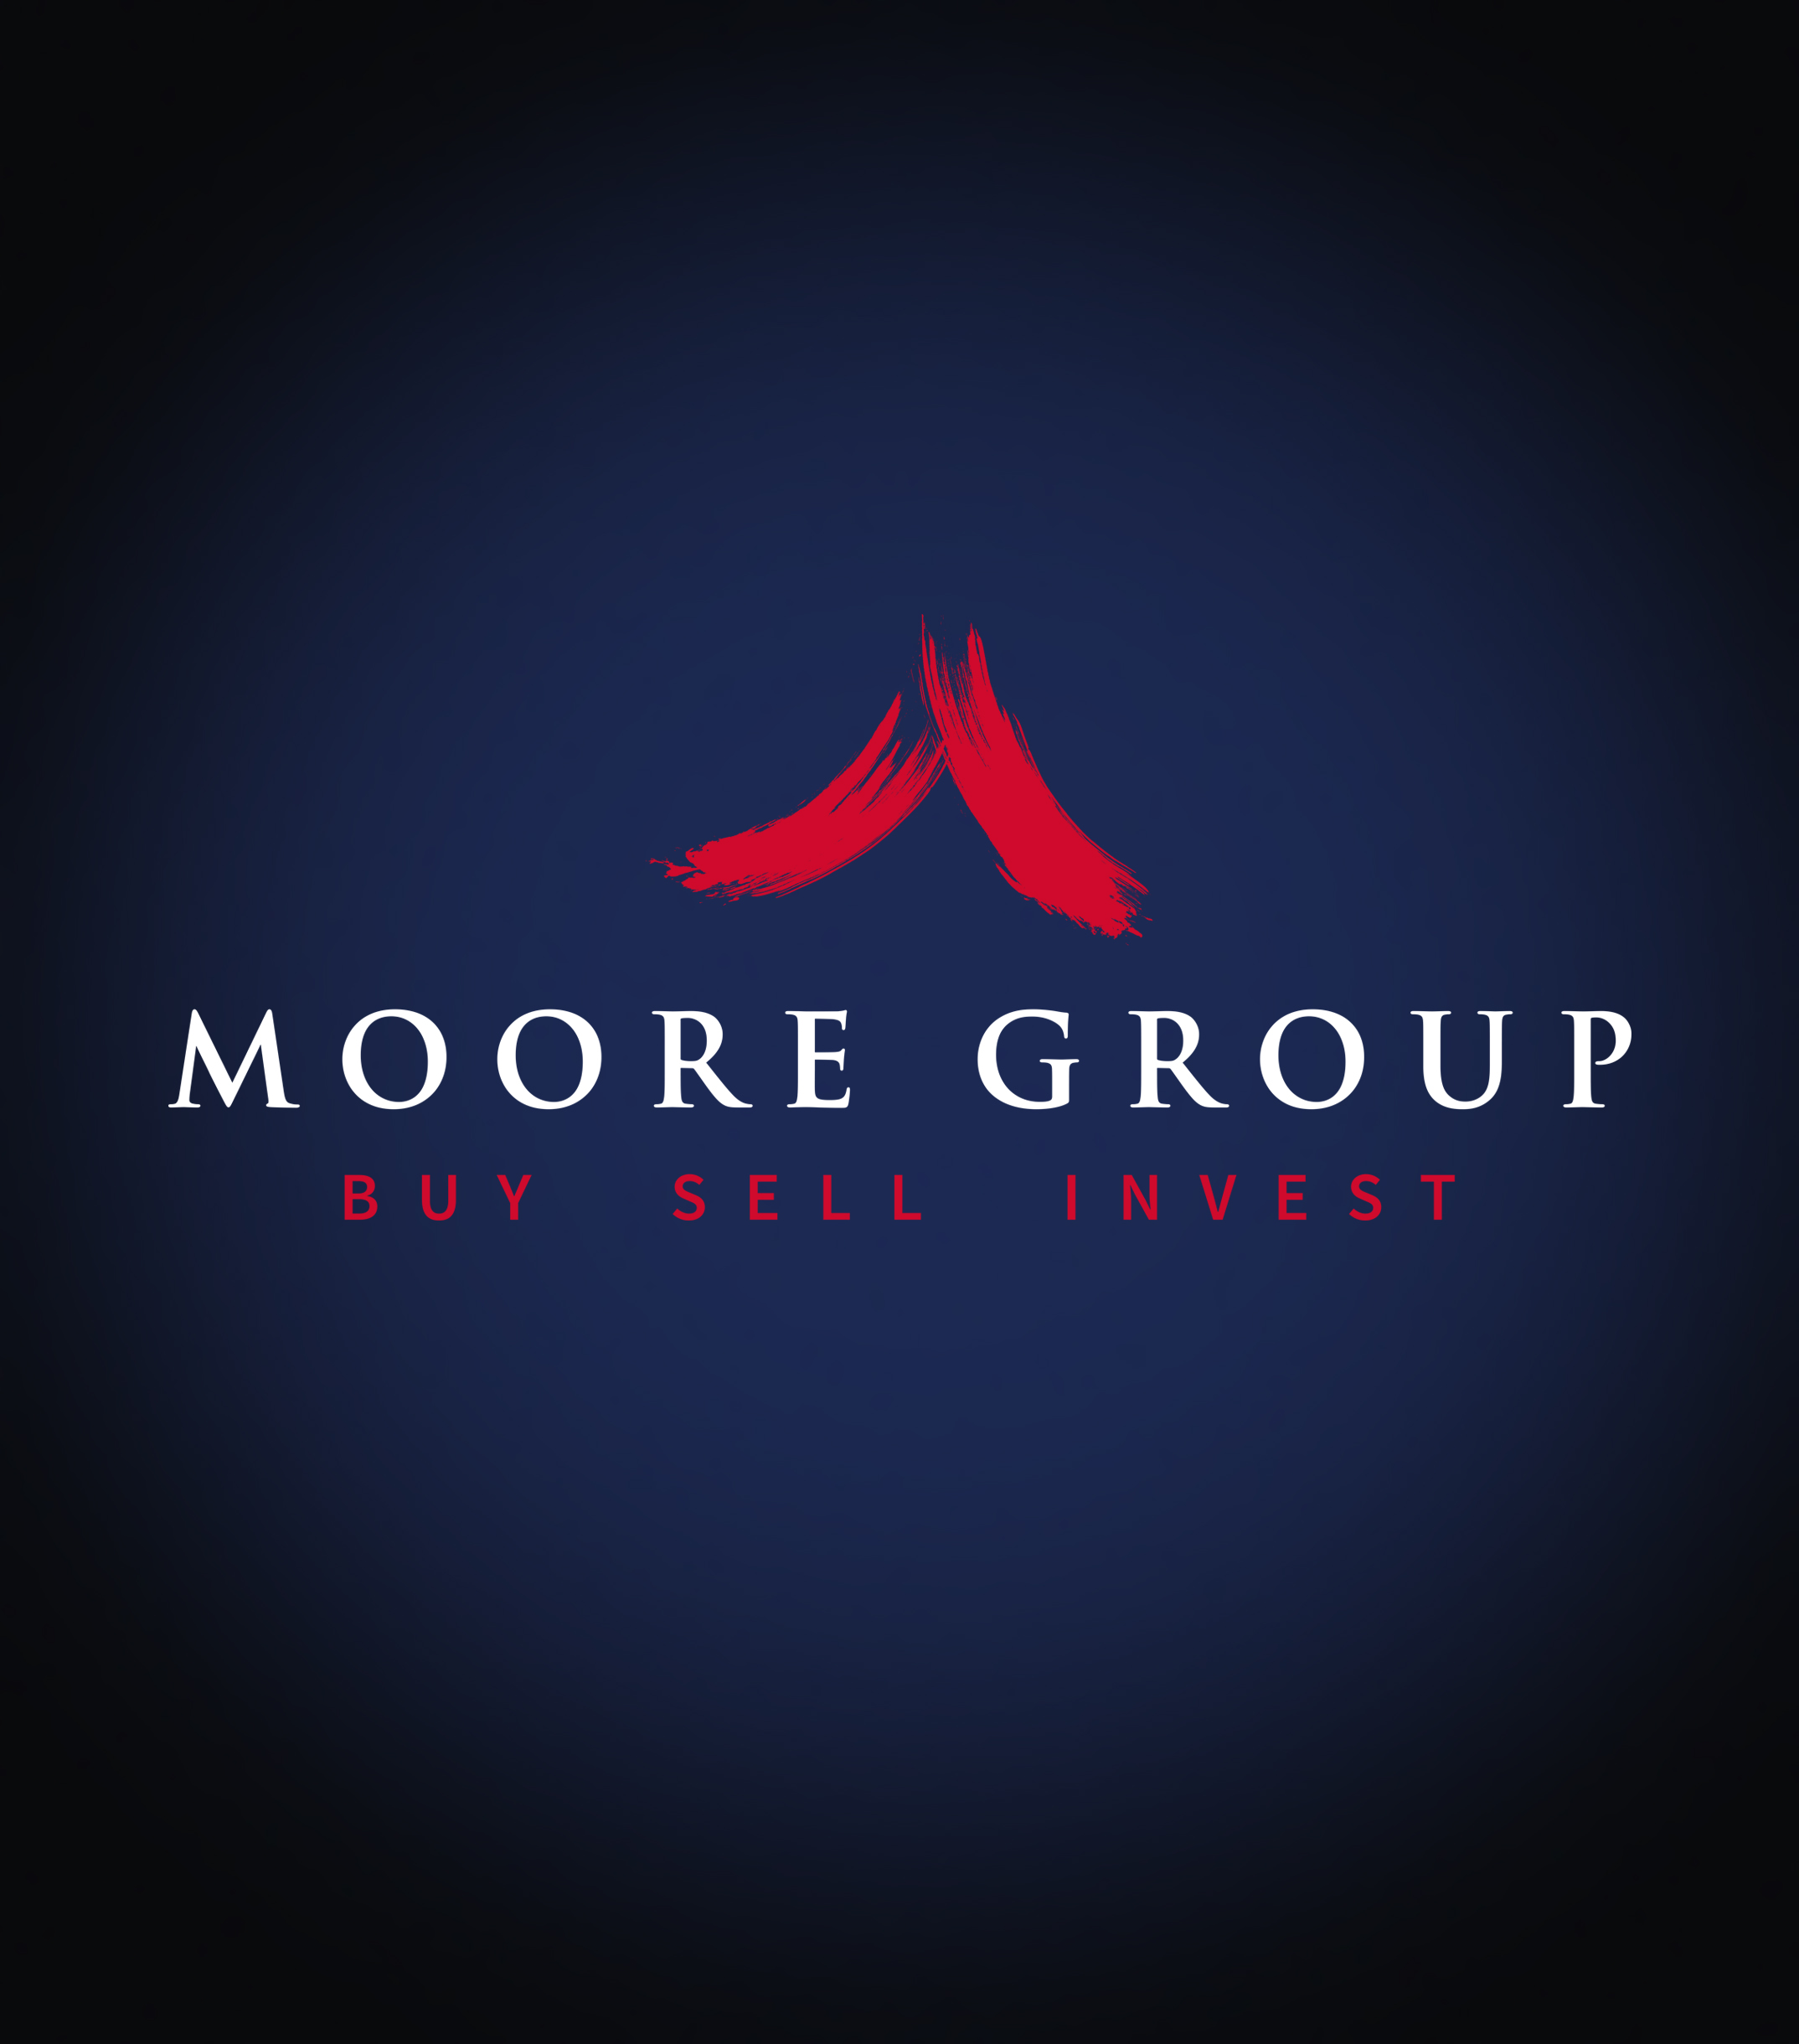 moore-group-winnipeg-remaz-team-branding-design-logo-clover-and-crow